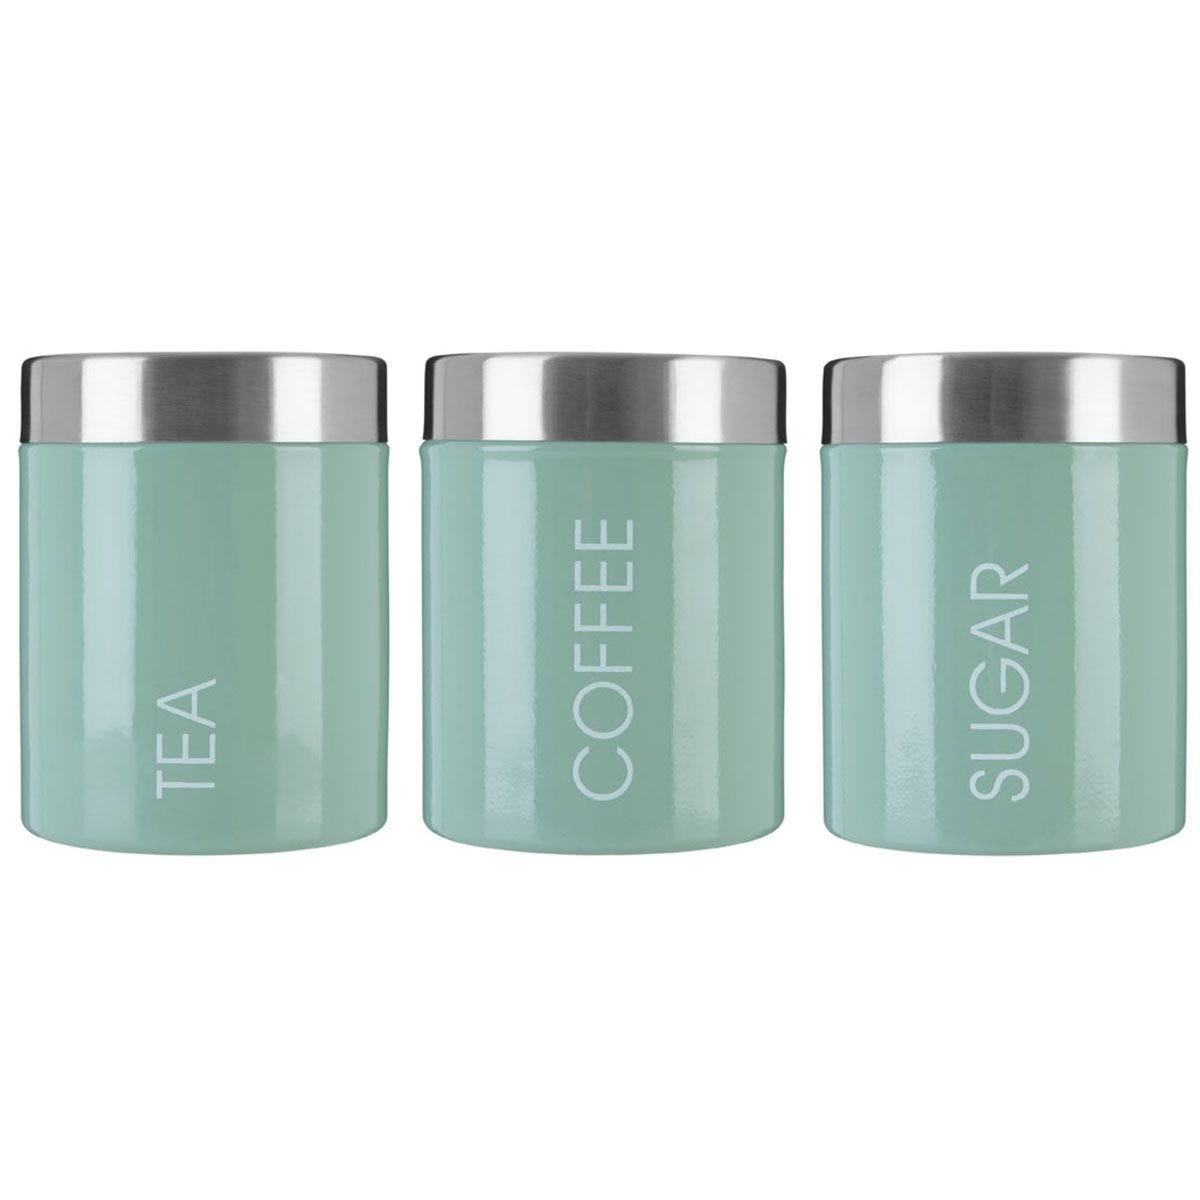 Premier Housewares Green Liberty Canisters - Set of 3